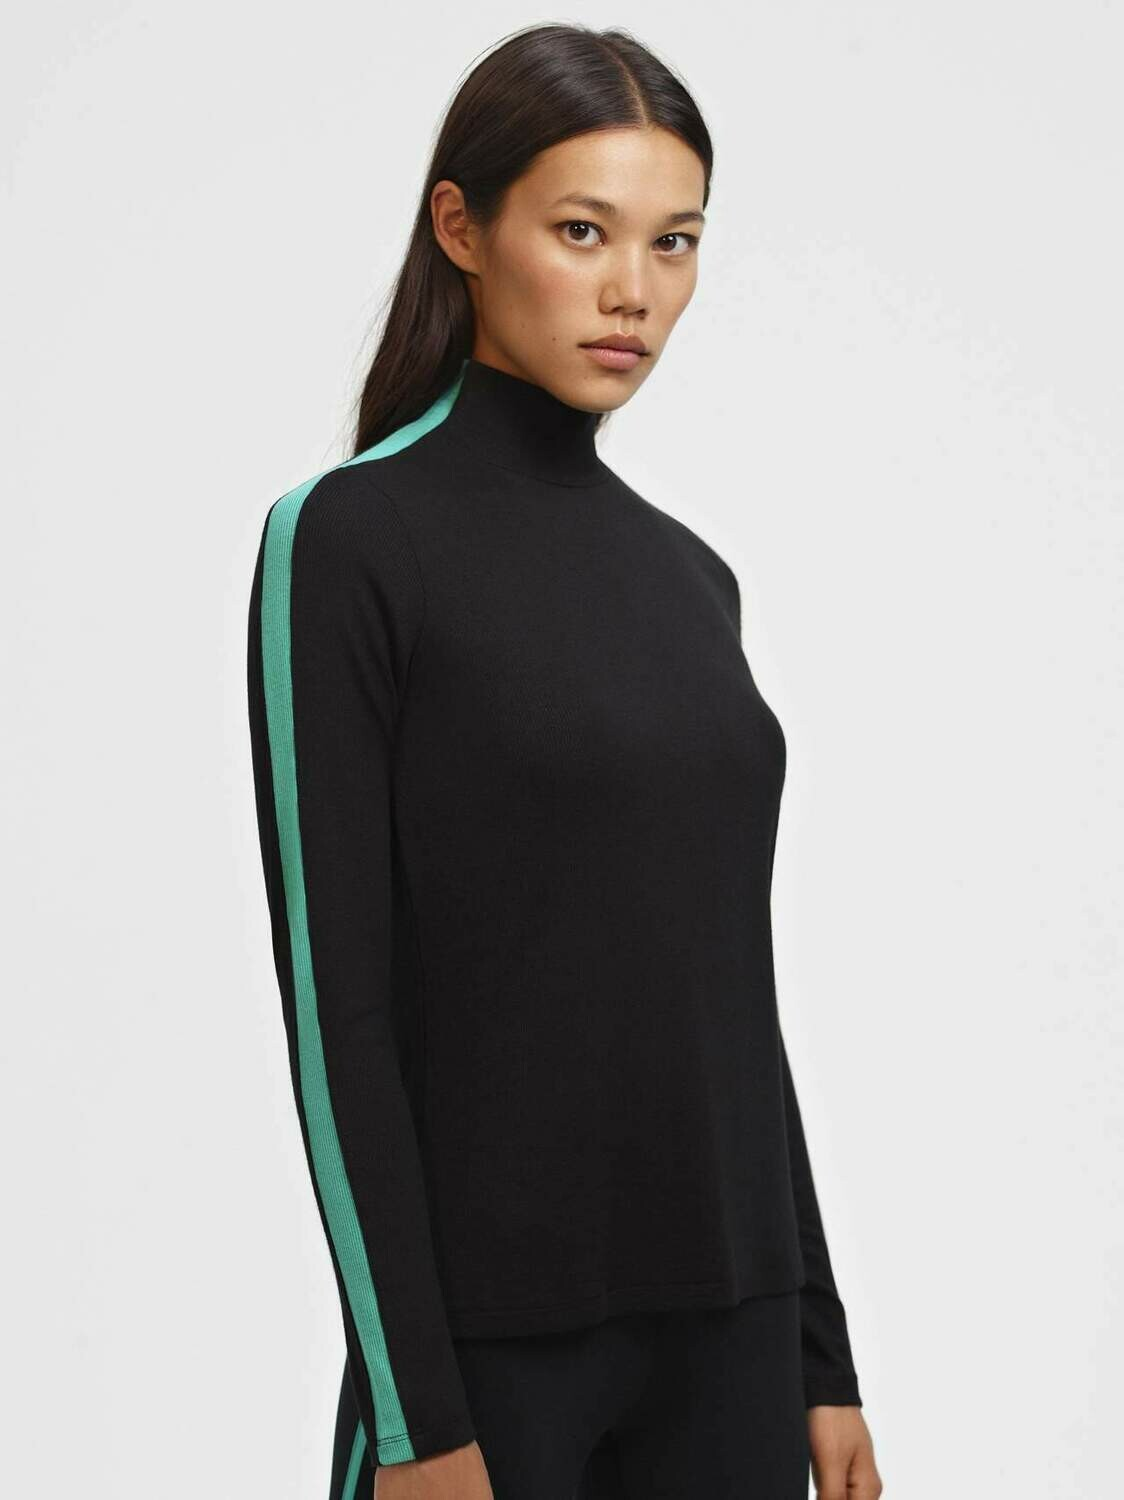 Splits59, Montana Rib Turtleneck, Black/Menthol